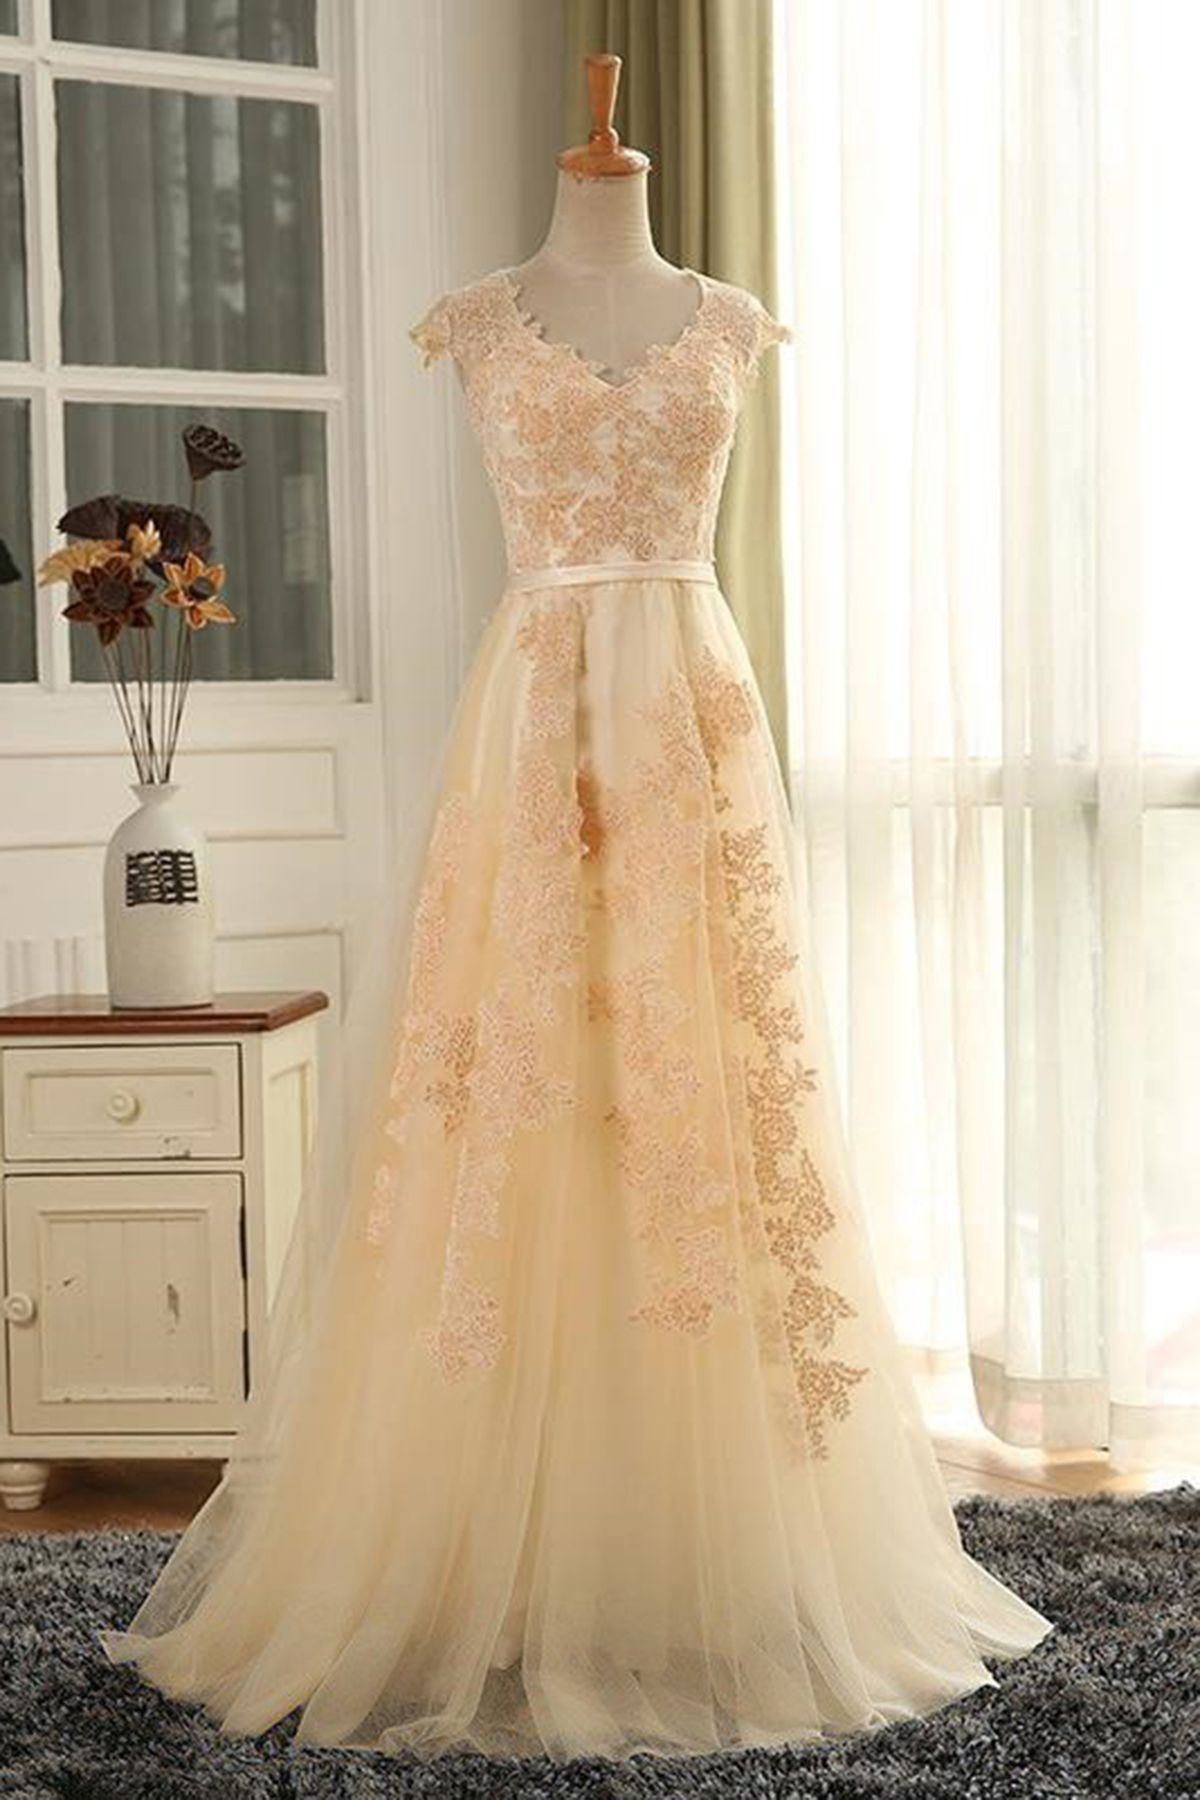 Elegant long customize senior prom dress tulle evening dress